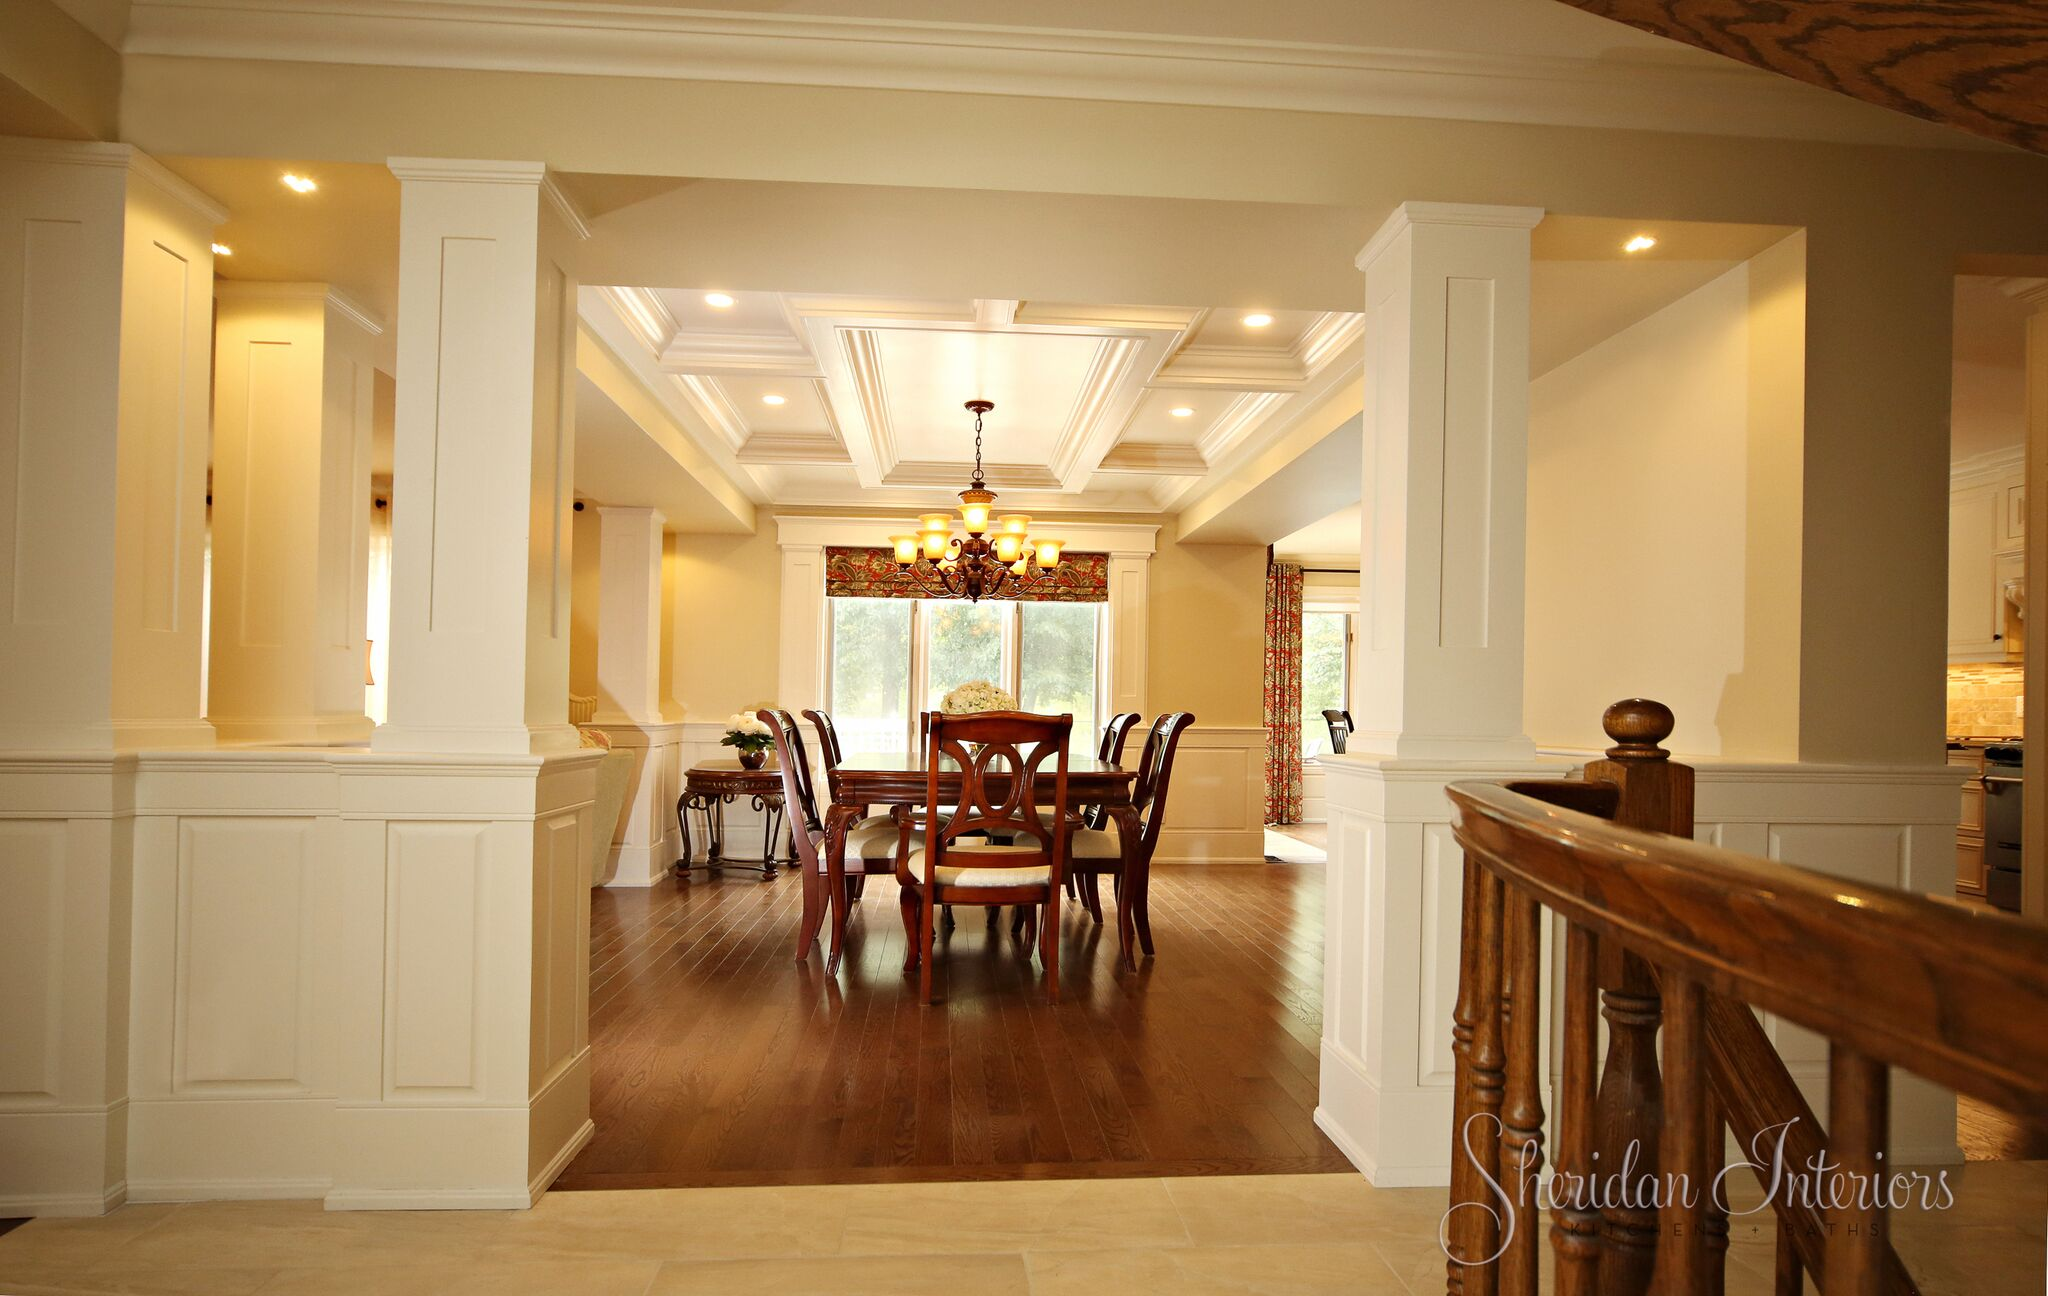 Traditional Dining Room with Coffered Ceiling and Columns - Sheridan Interiors